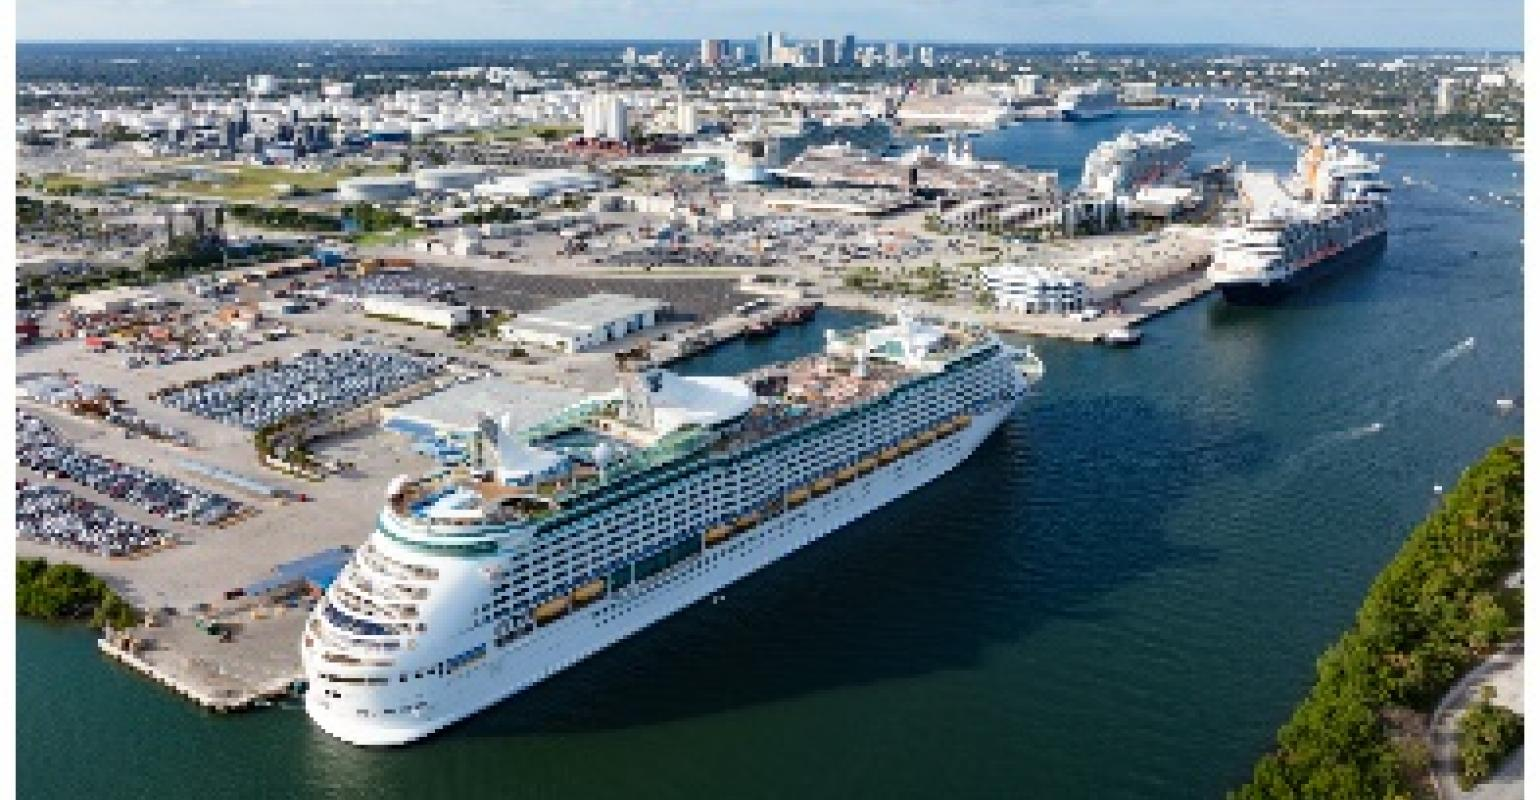 Port Everglades Cruise Schedule 2020.Port Everglades Tops Its Own World Record For Most